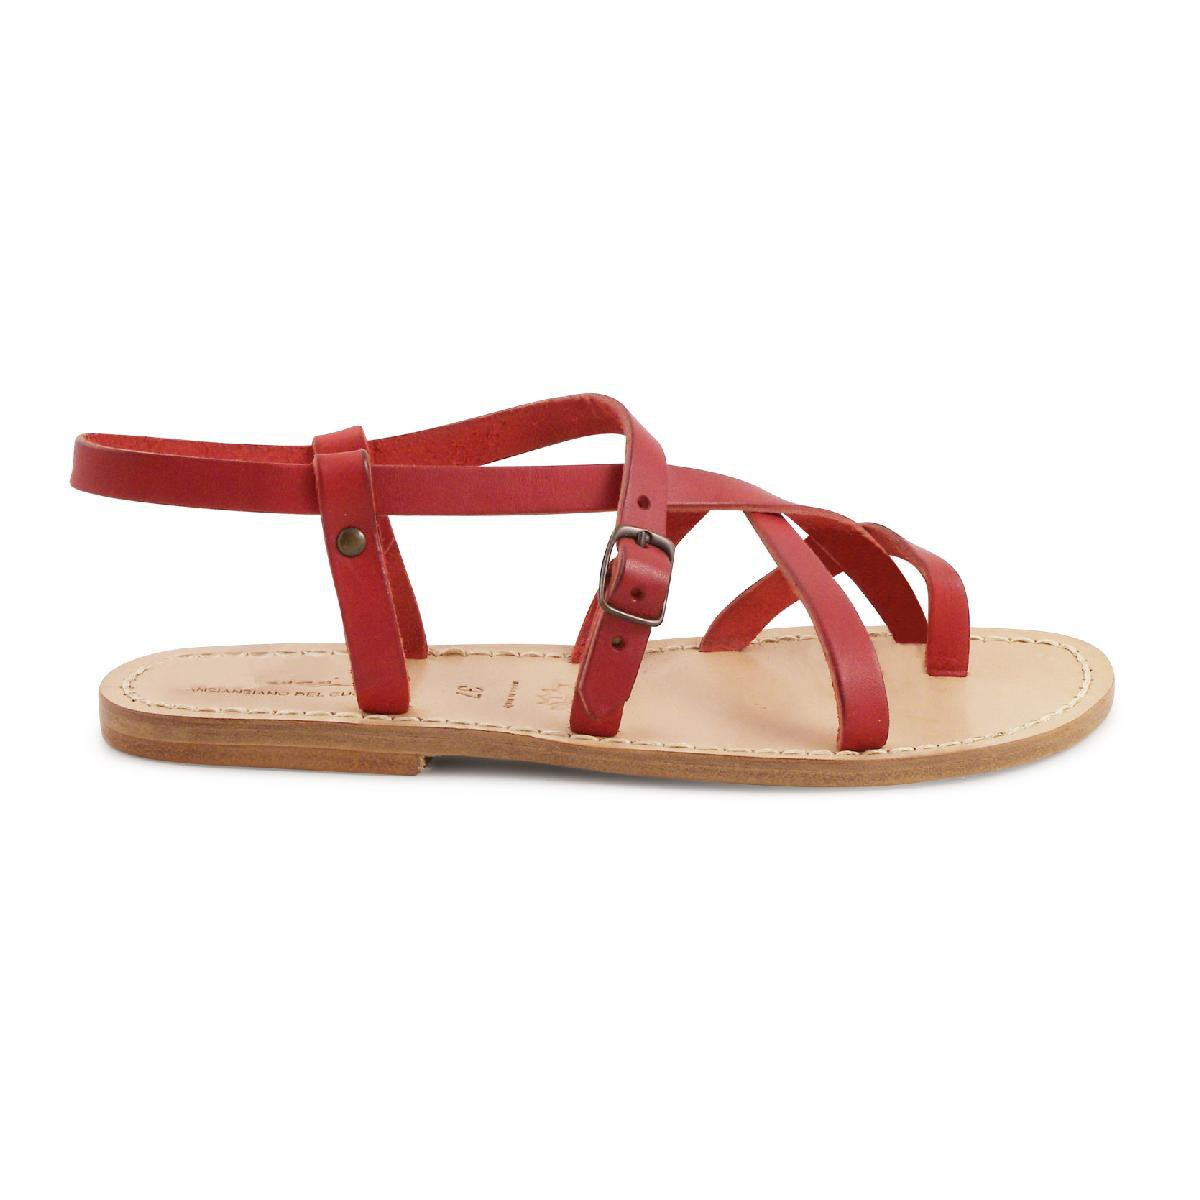 Discover the latest styles of women's casual flats from your favorite brands at Famous Footwear! Find your fit today!